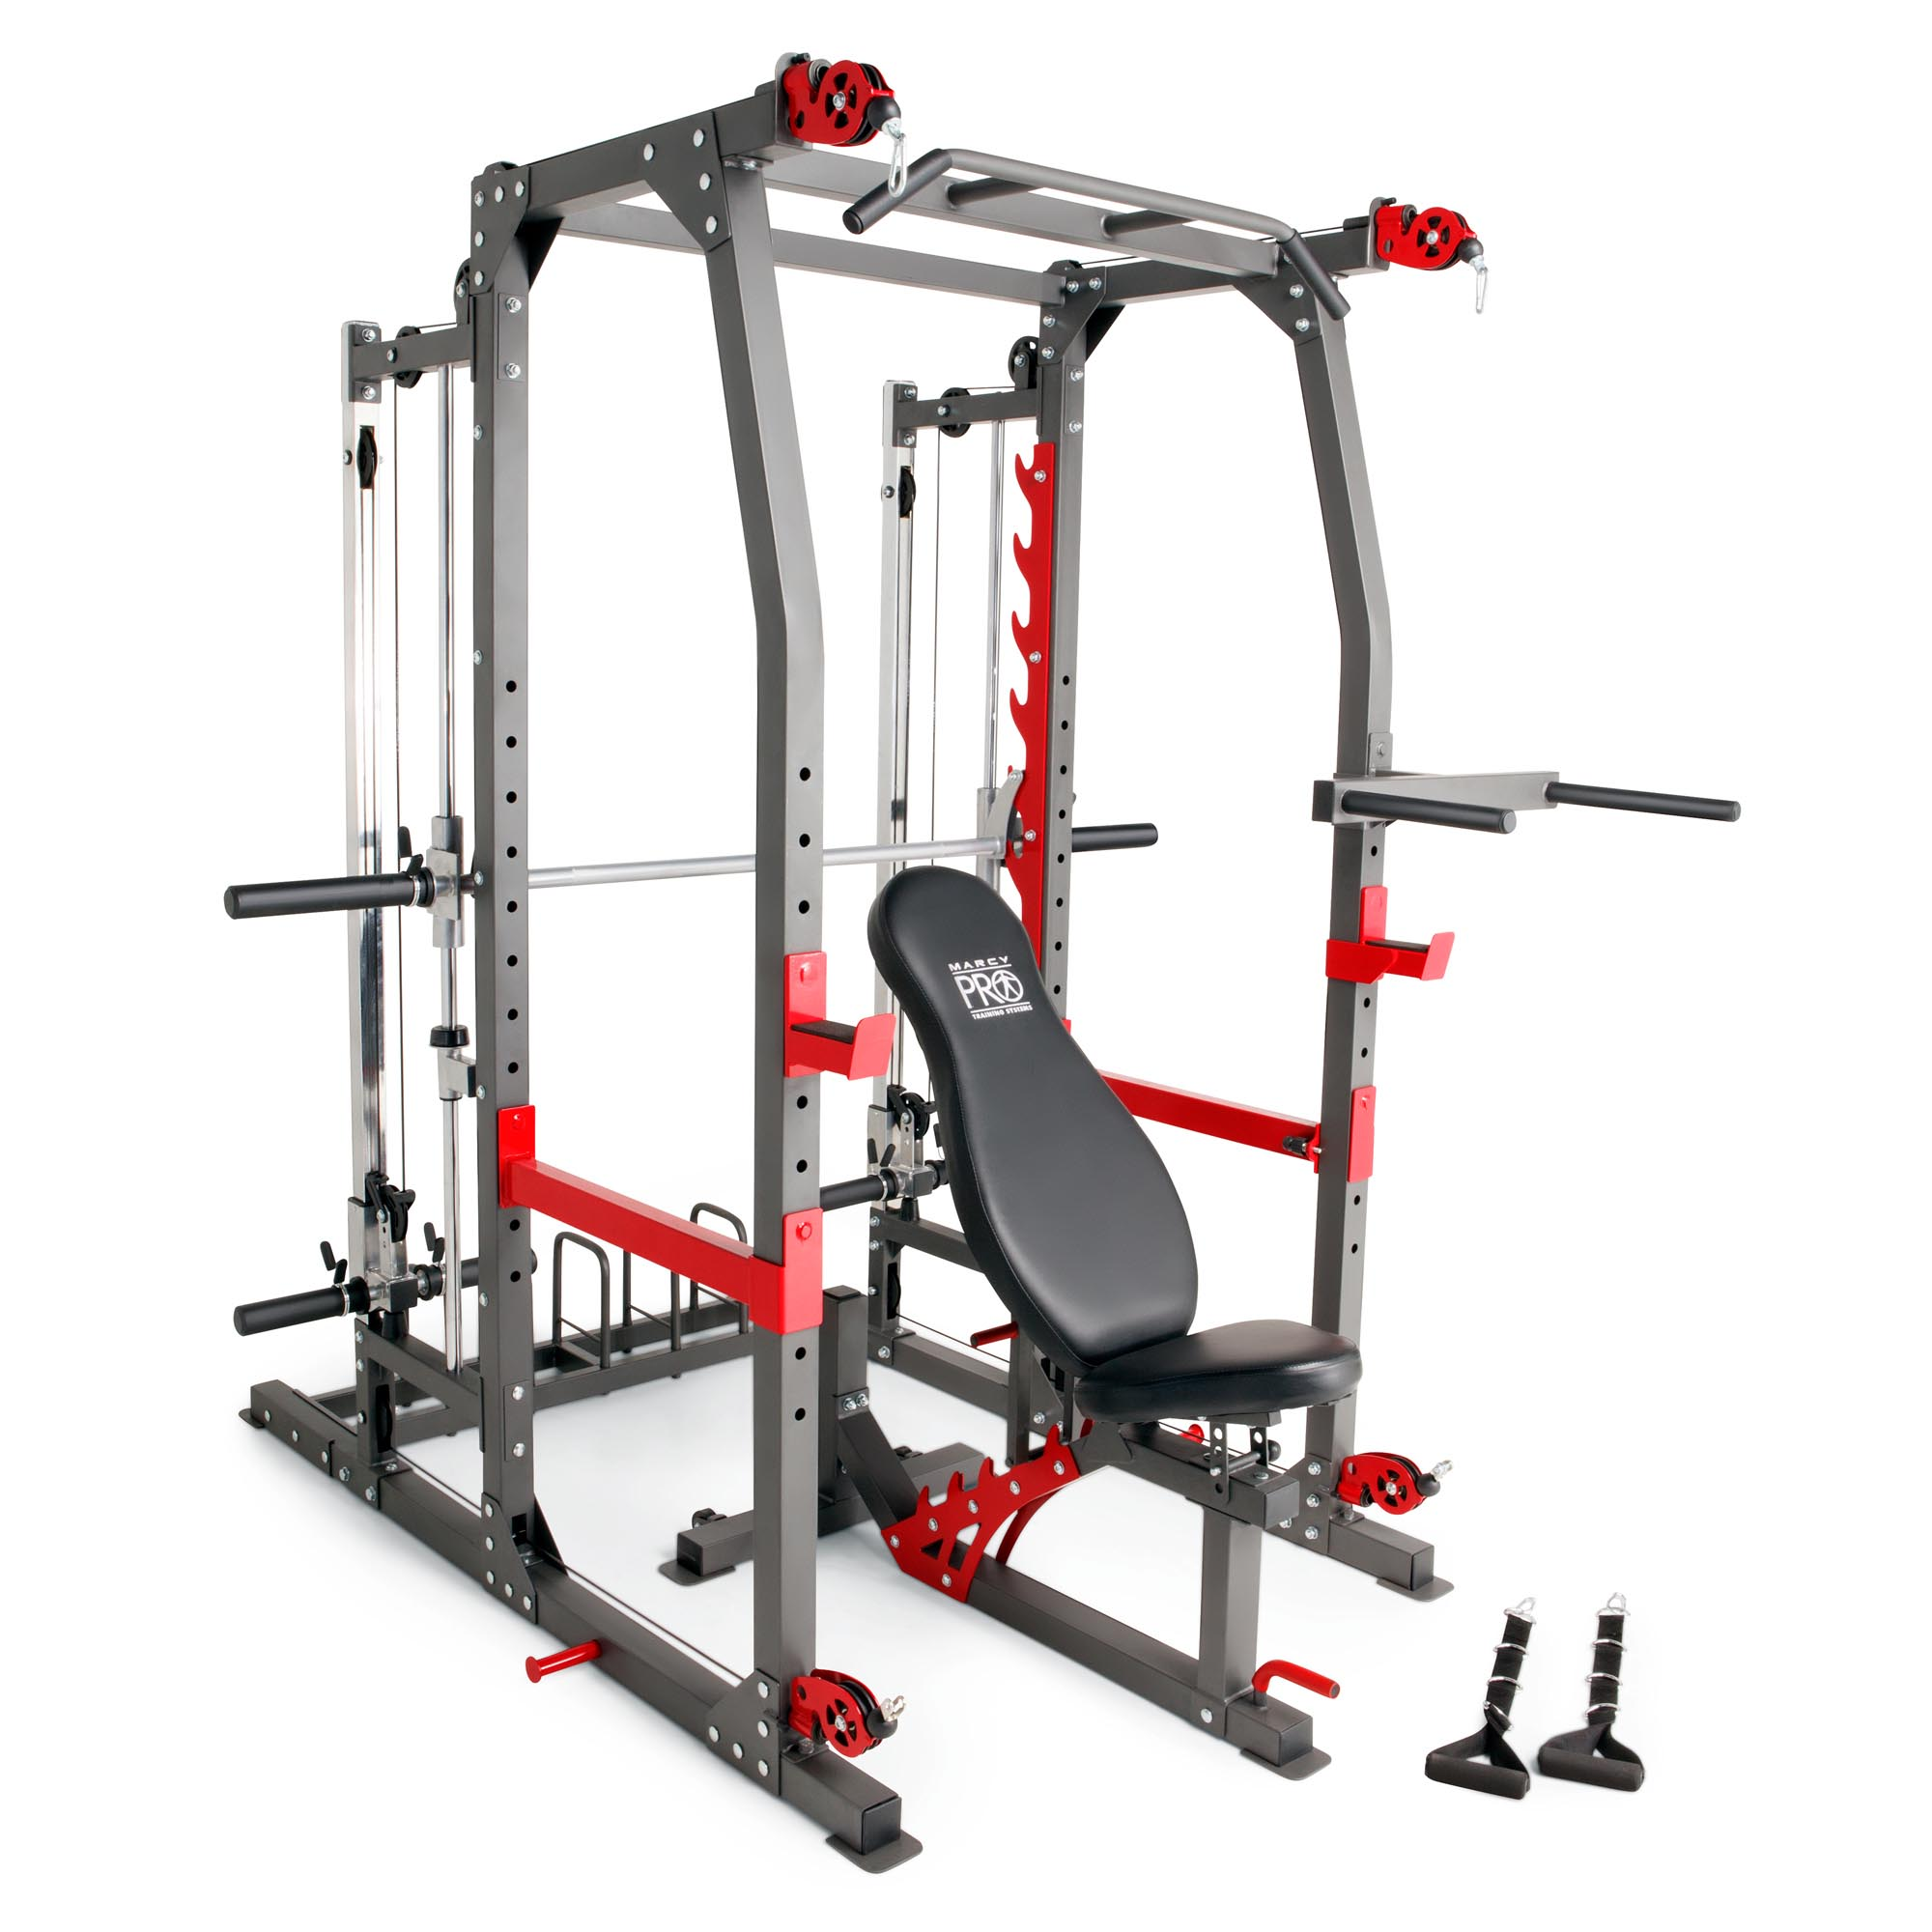 Marcy Pro Smith Machine Weight Bench Home Gym Total Body Workout Training